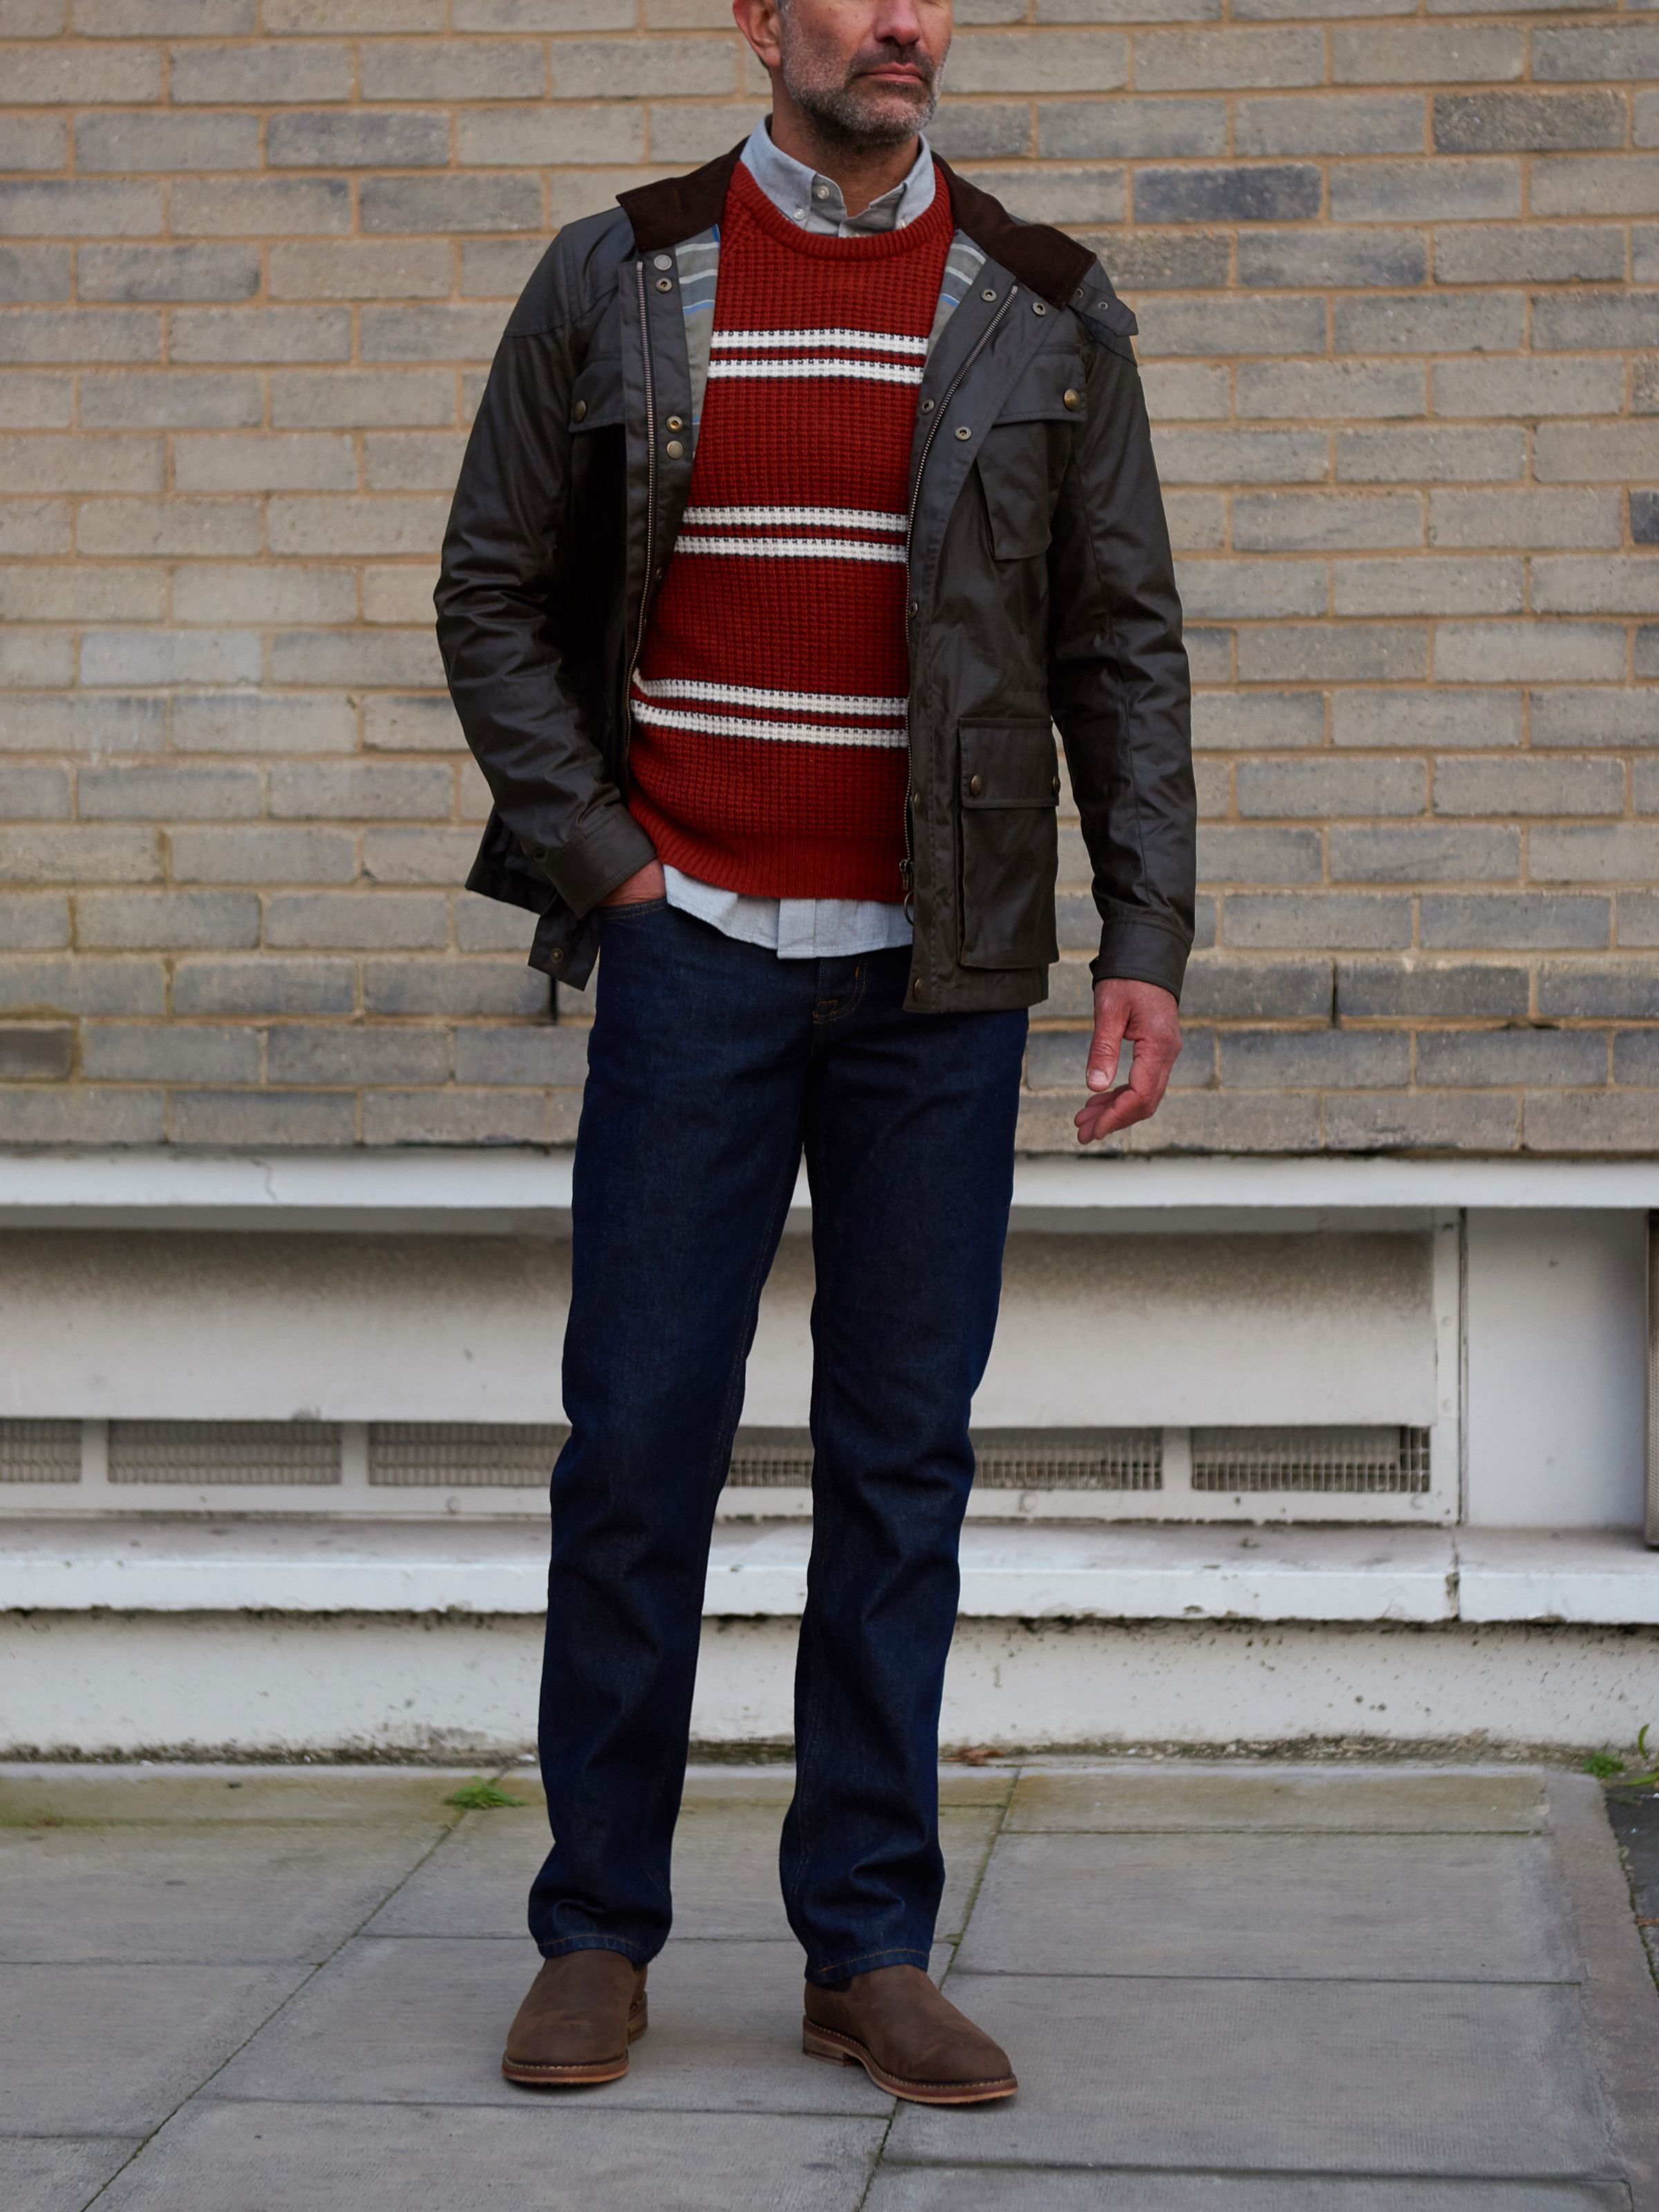 Men's outfit idea for 2021 with red plain crew neck knitted jumper, pale coloured casual shirt, dark blue jeans, brown chelsea boots. Suitable for autumn and winter.